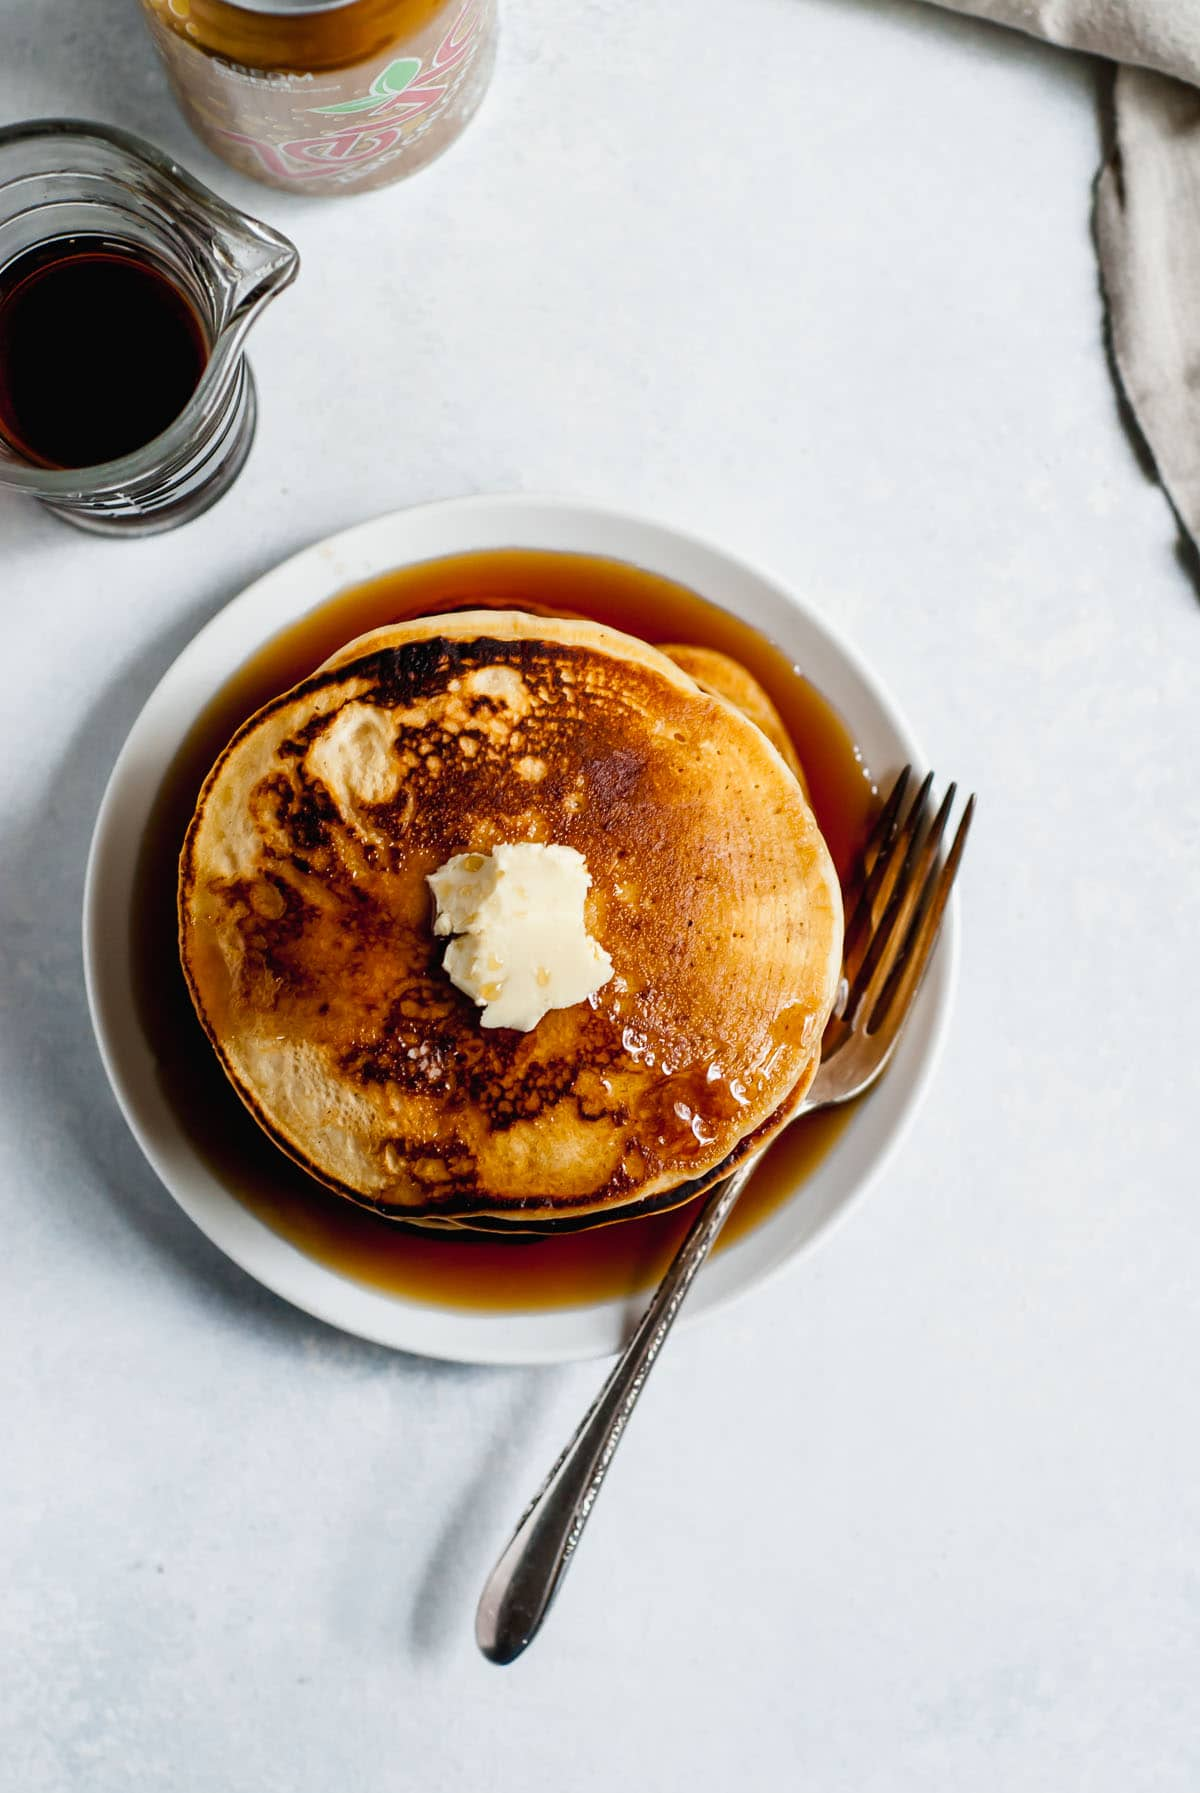 pancakes on a plate from overhead with cup of syrup and fork